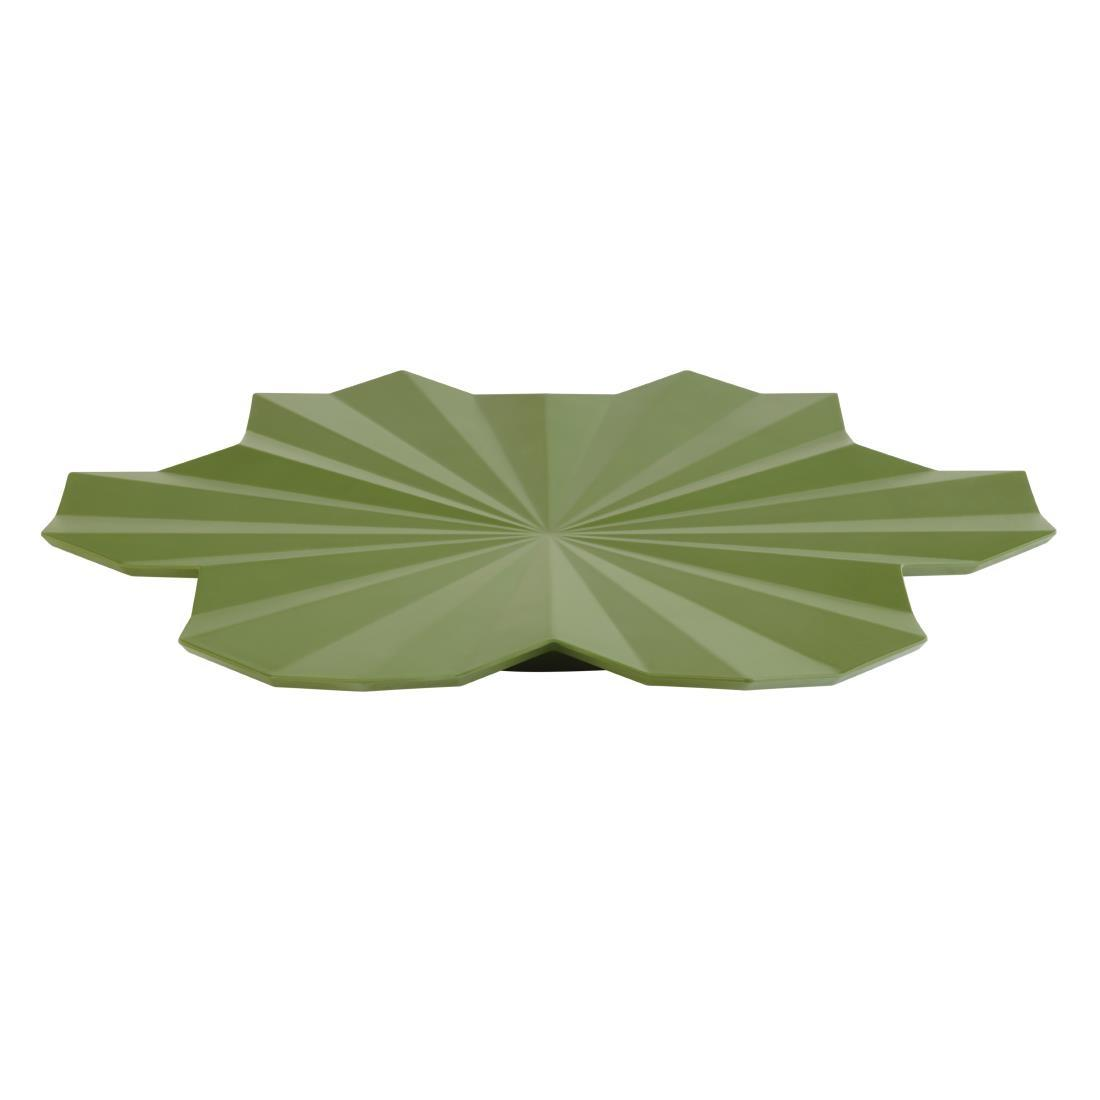 DT796 - APS+ Lotus Leaf Platter Dark Green 465mm - Each - DT796